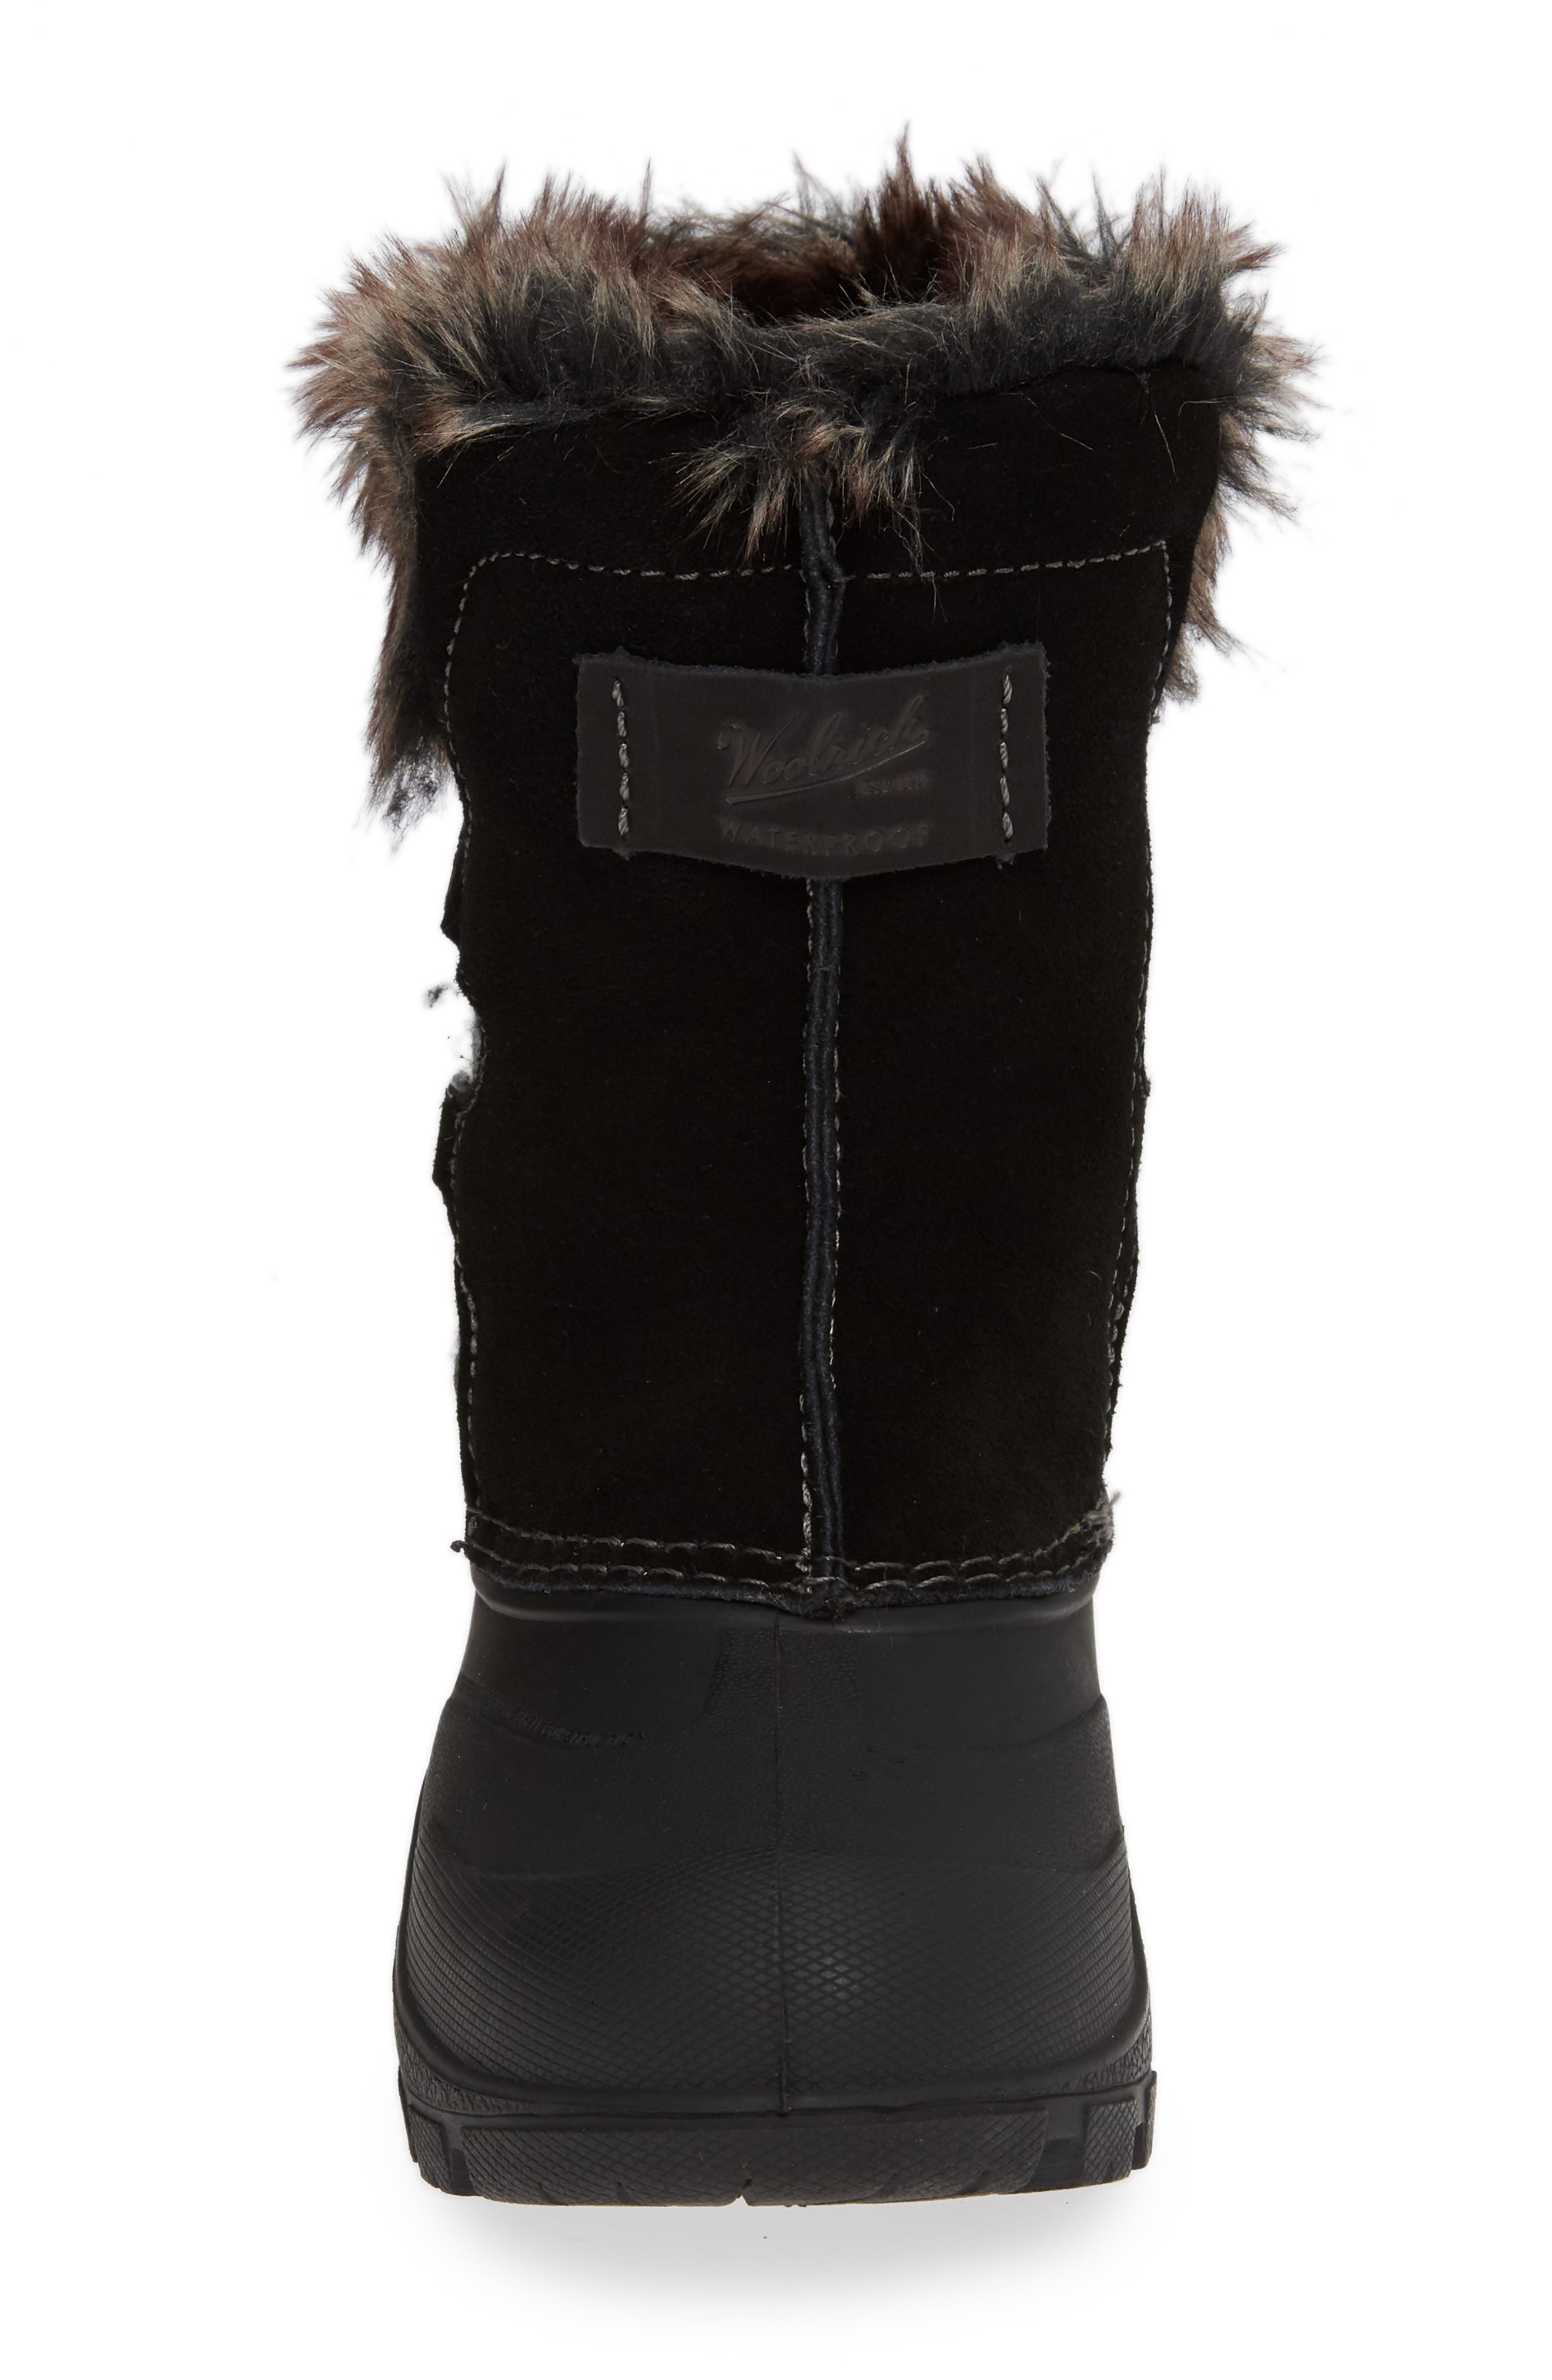 Icecat II Fully Wooly Waterproof Insulated Winter Boot,                             Alternate thumbnail 4, color,                             BLACK WOOL